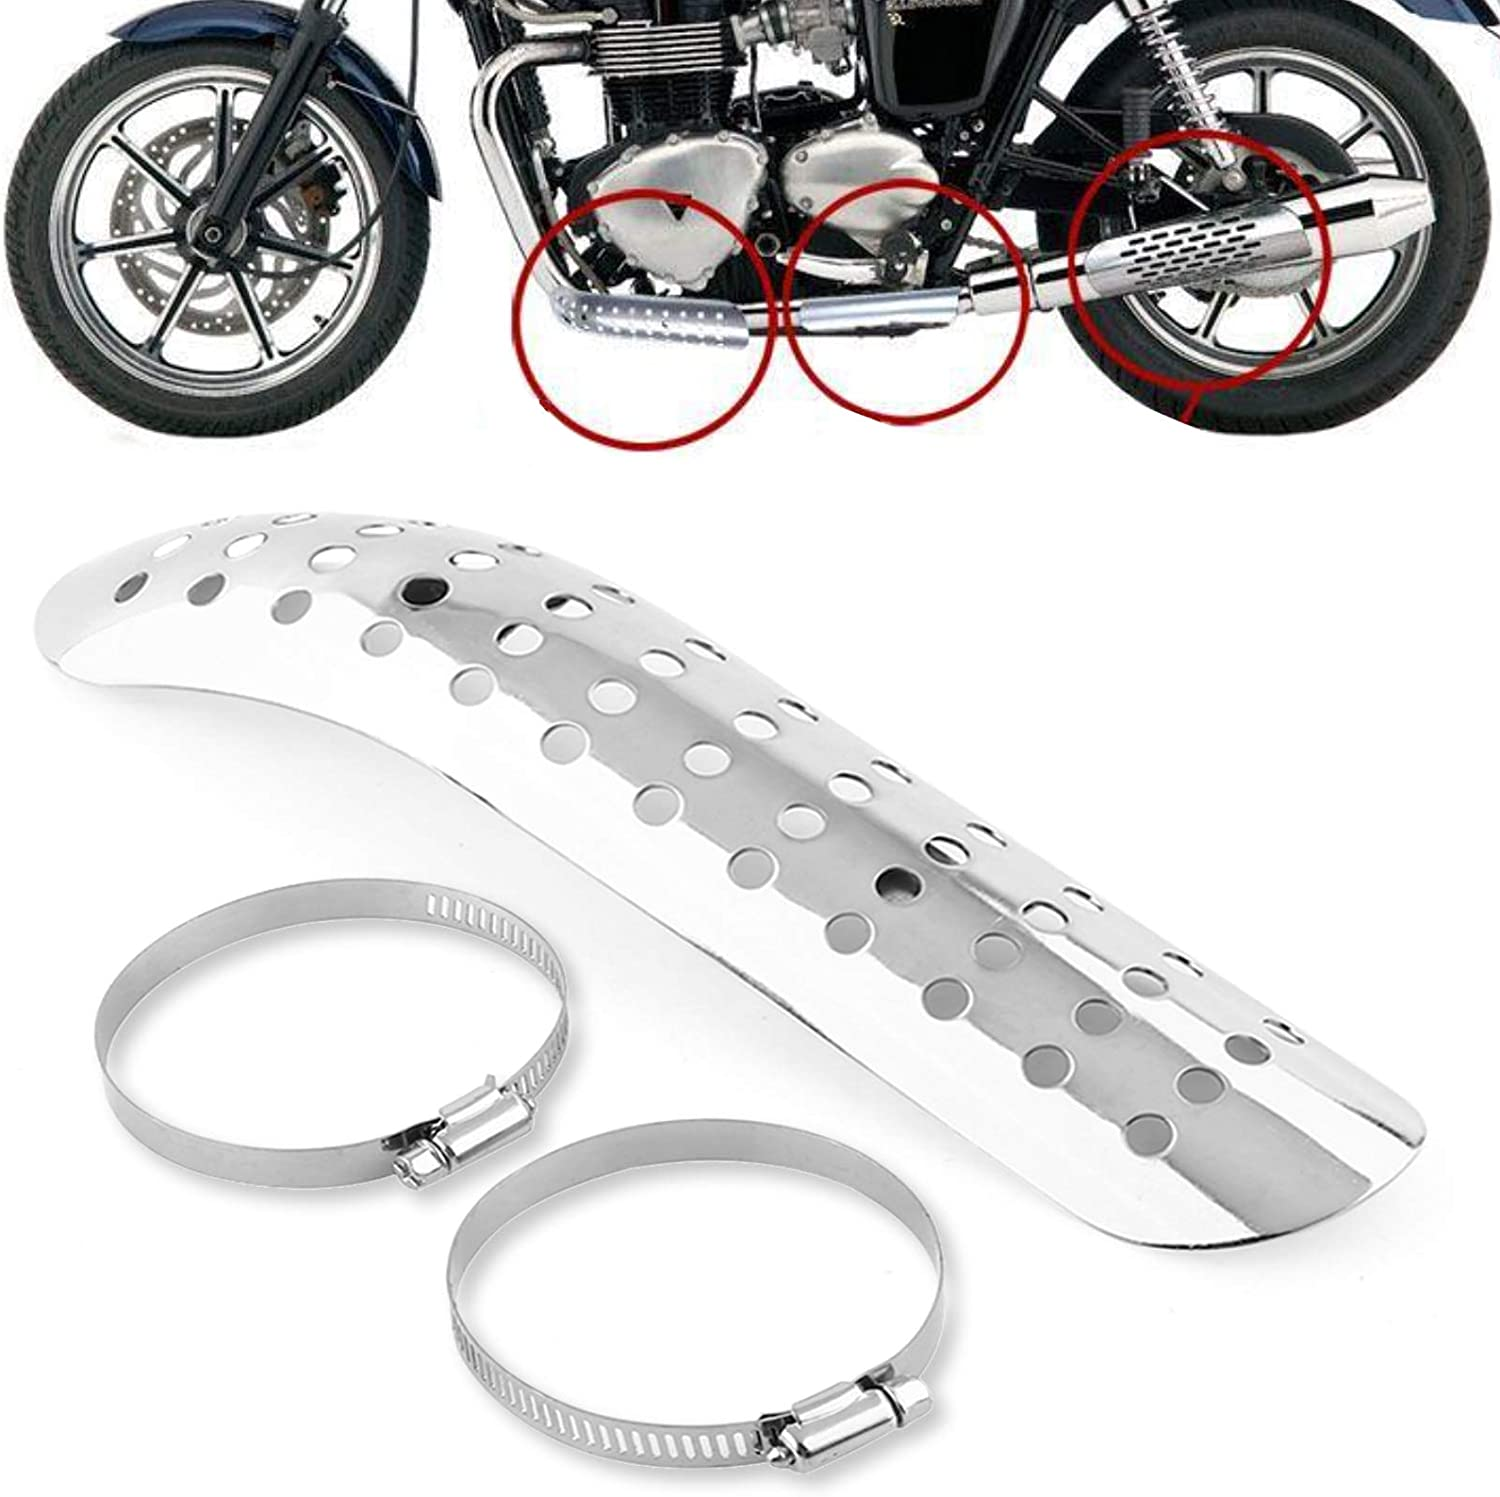 Steel Motorcycle Exhaust Pipe Middle Link Heat Shield Cover Heel Guard Protector